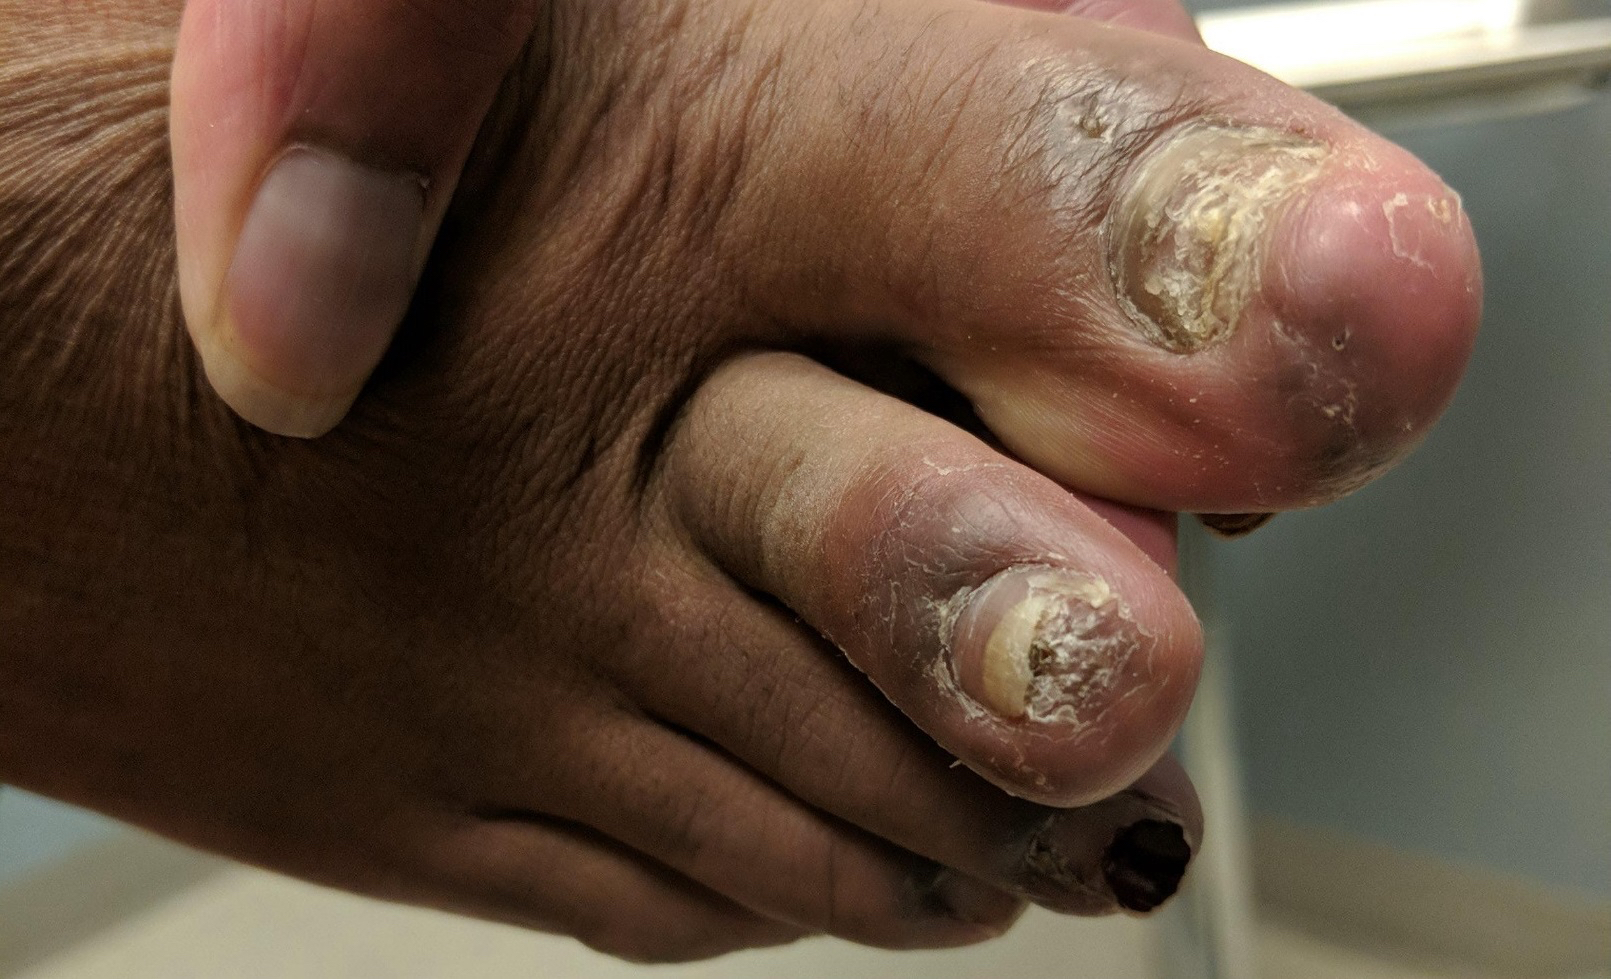 Key Questions To Consider: 1. What is the likely etiology of these nail abnormalities? 2. What treatment options exist for nail and nail fold pathology resulting from systemic lupus erythematosus? 3. How can you advise patients on the prognosis of nail and nail fold disorders associated with systemic lupus erythematosus?